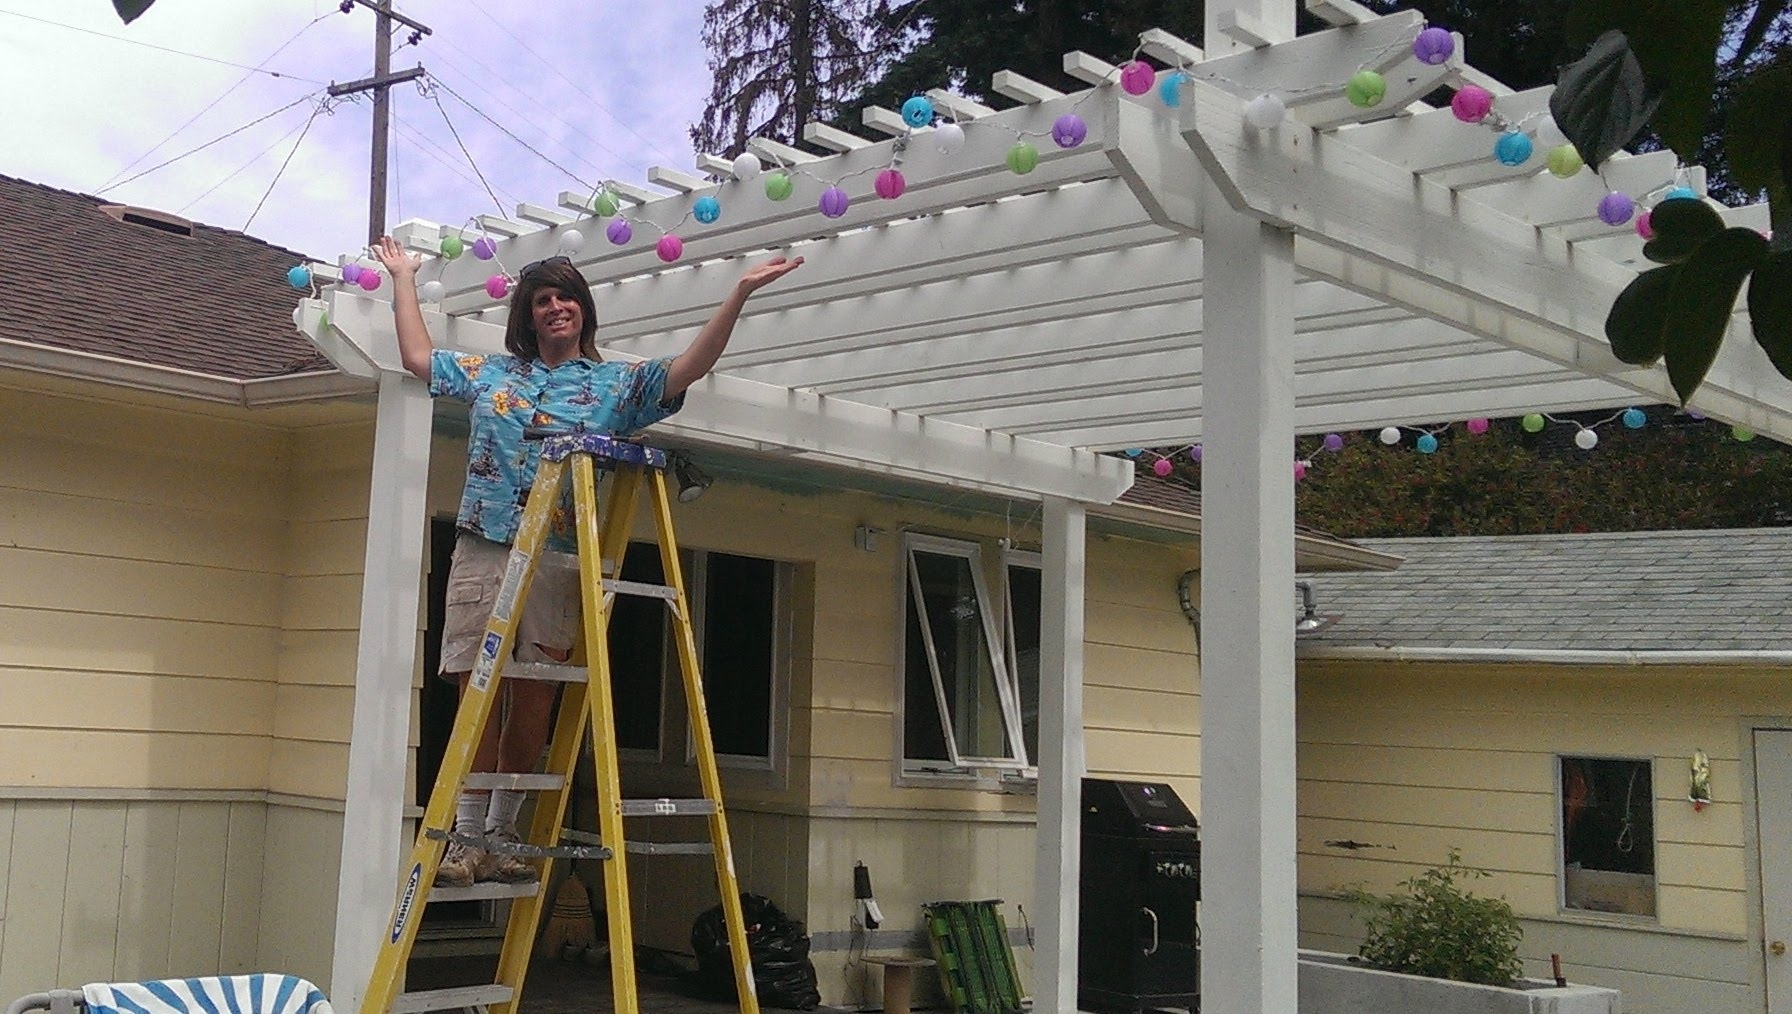 Hanging Outdoor Lights For A Party Pertaining To Recent How To Hang Outdoor Party Lightsweekend Warrior Project – Youtube (View 9 of 20)